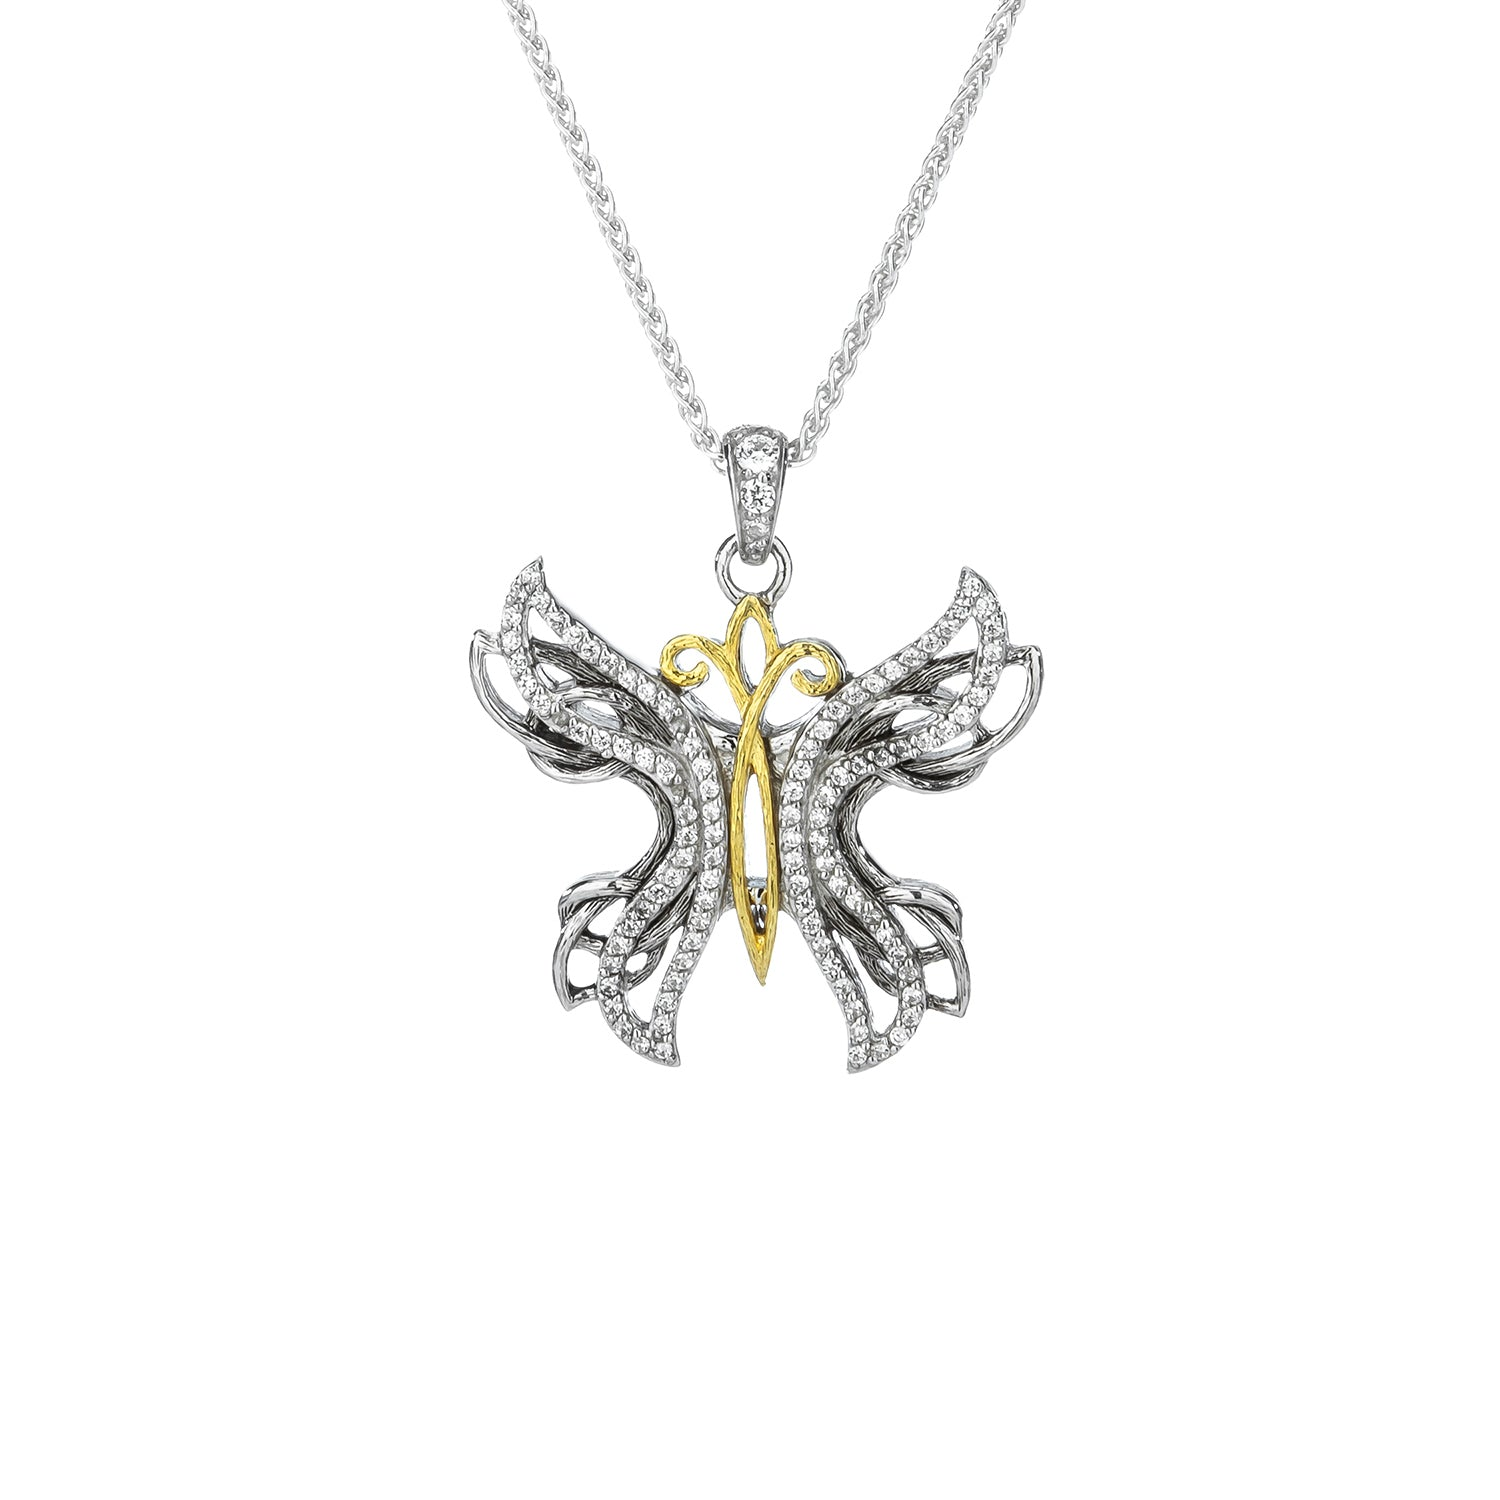 Pendant 10k White CZ Barked Soaring Butterfly Pendant from welch and company jewelers near syracuse ny